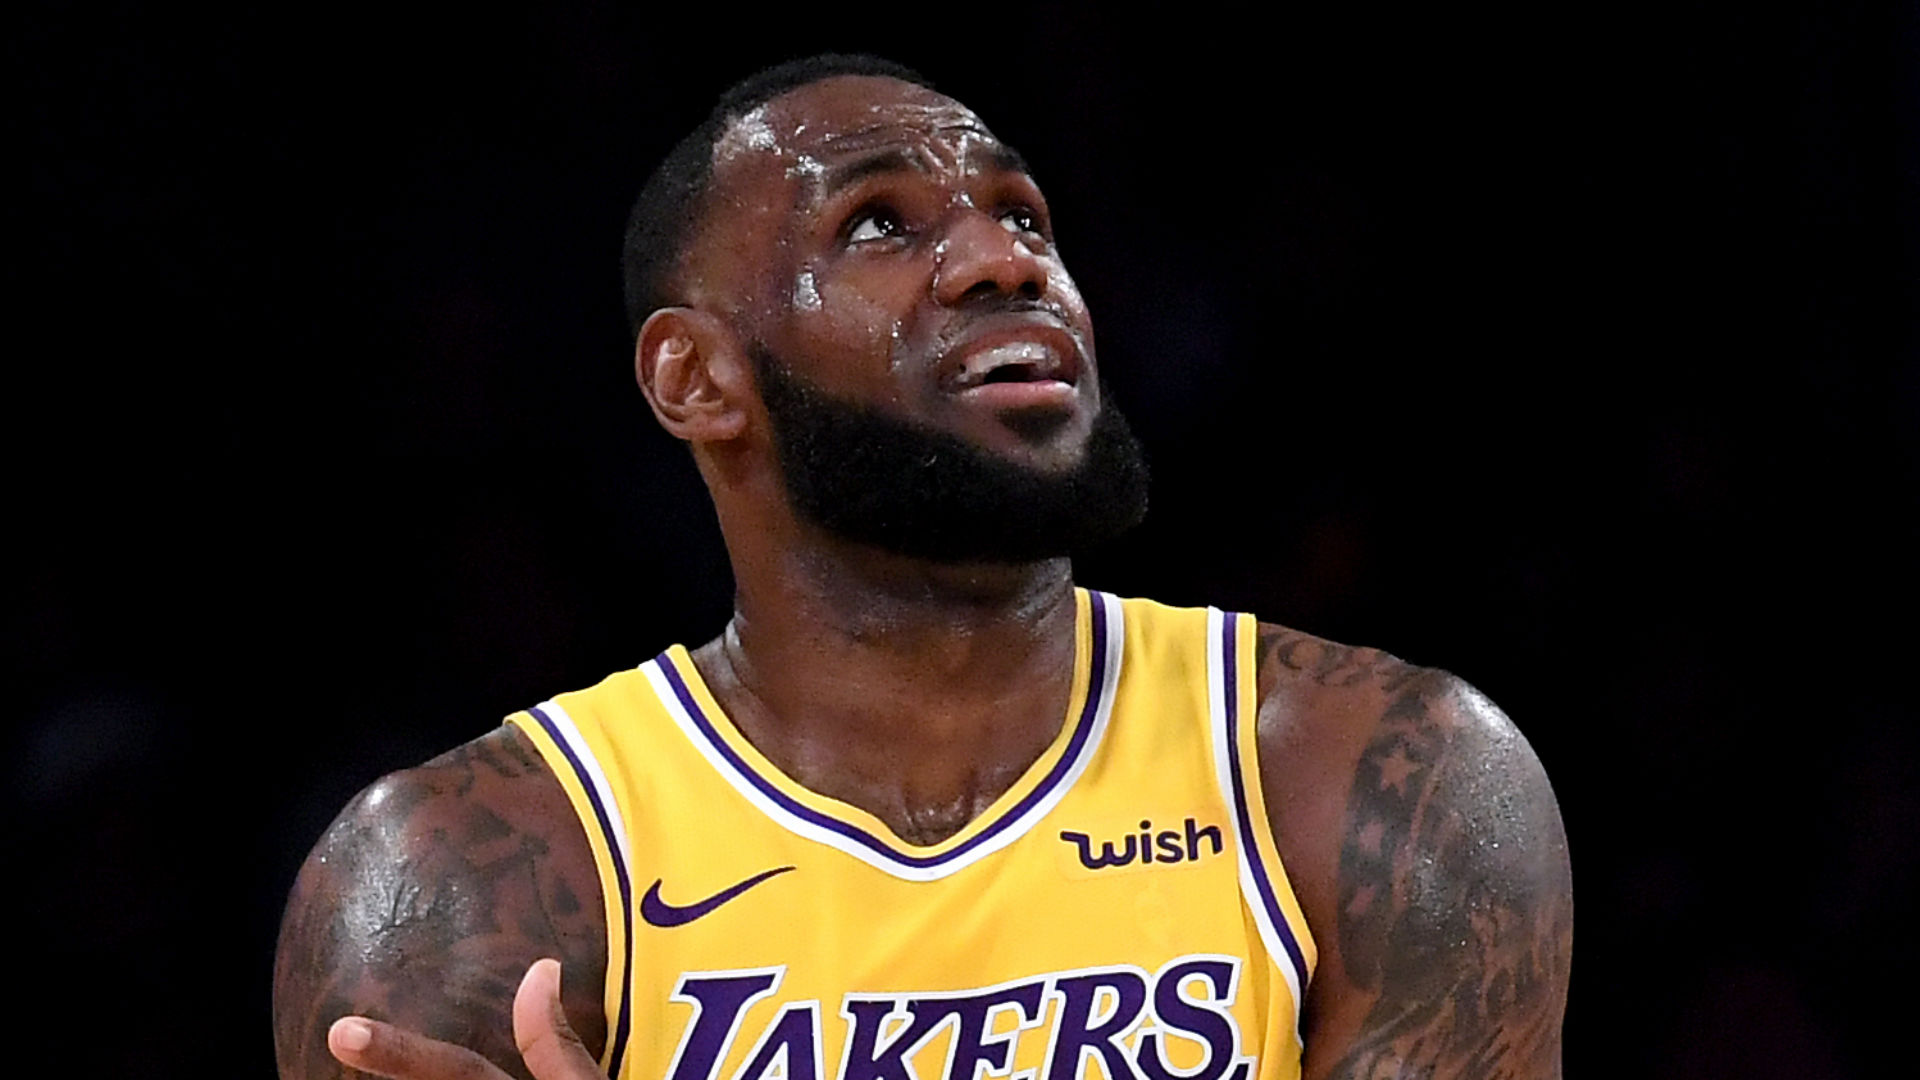 Lakers' LeBron James to play Sunday against Knicks